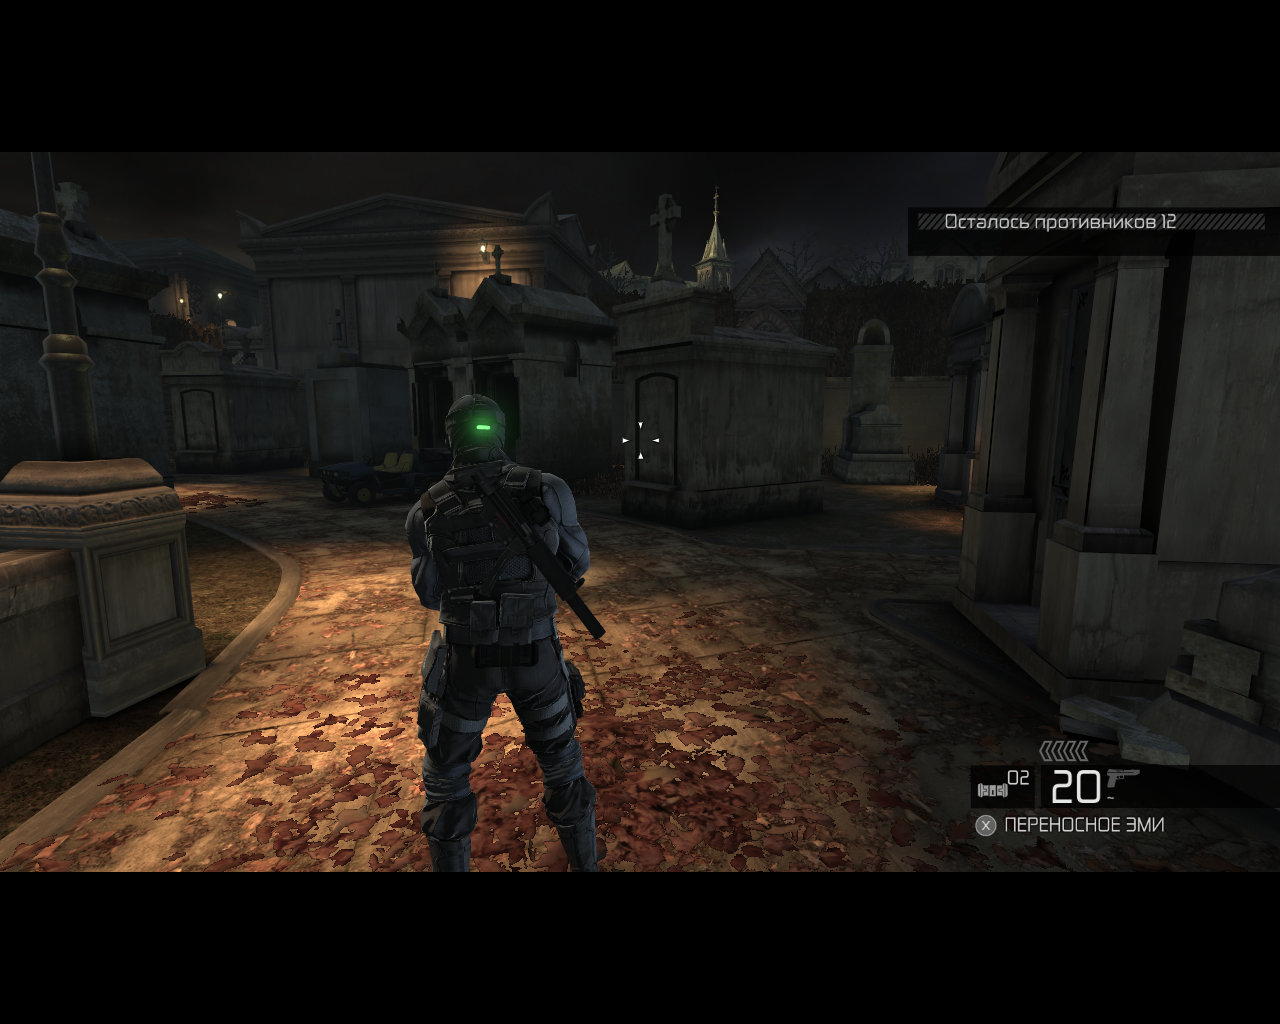 Tom Clancy S Splinter Cell Conviction Insurgency Pack Screenshots For Windows Mobygames